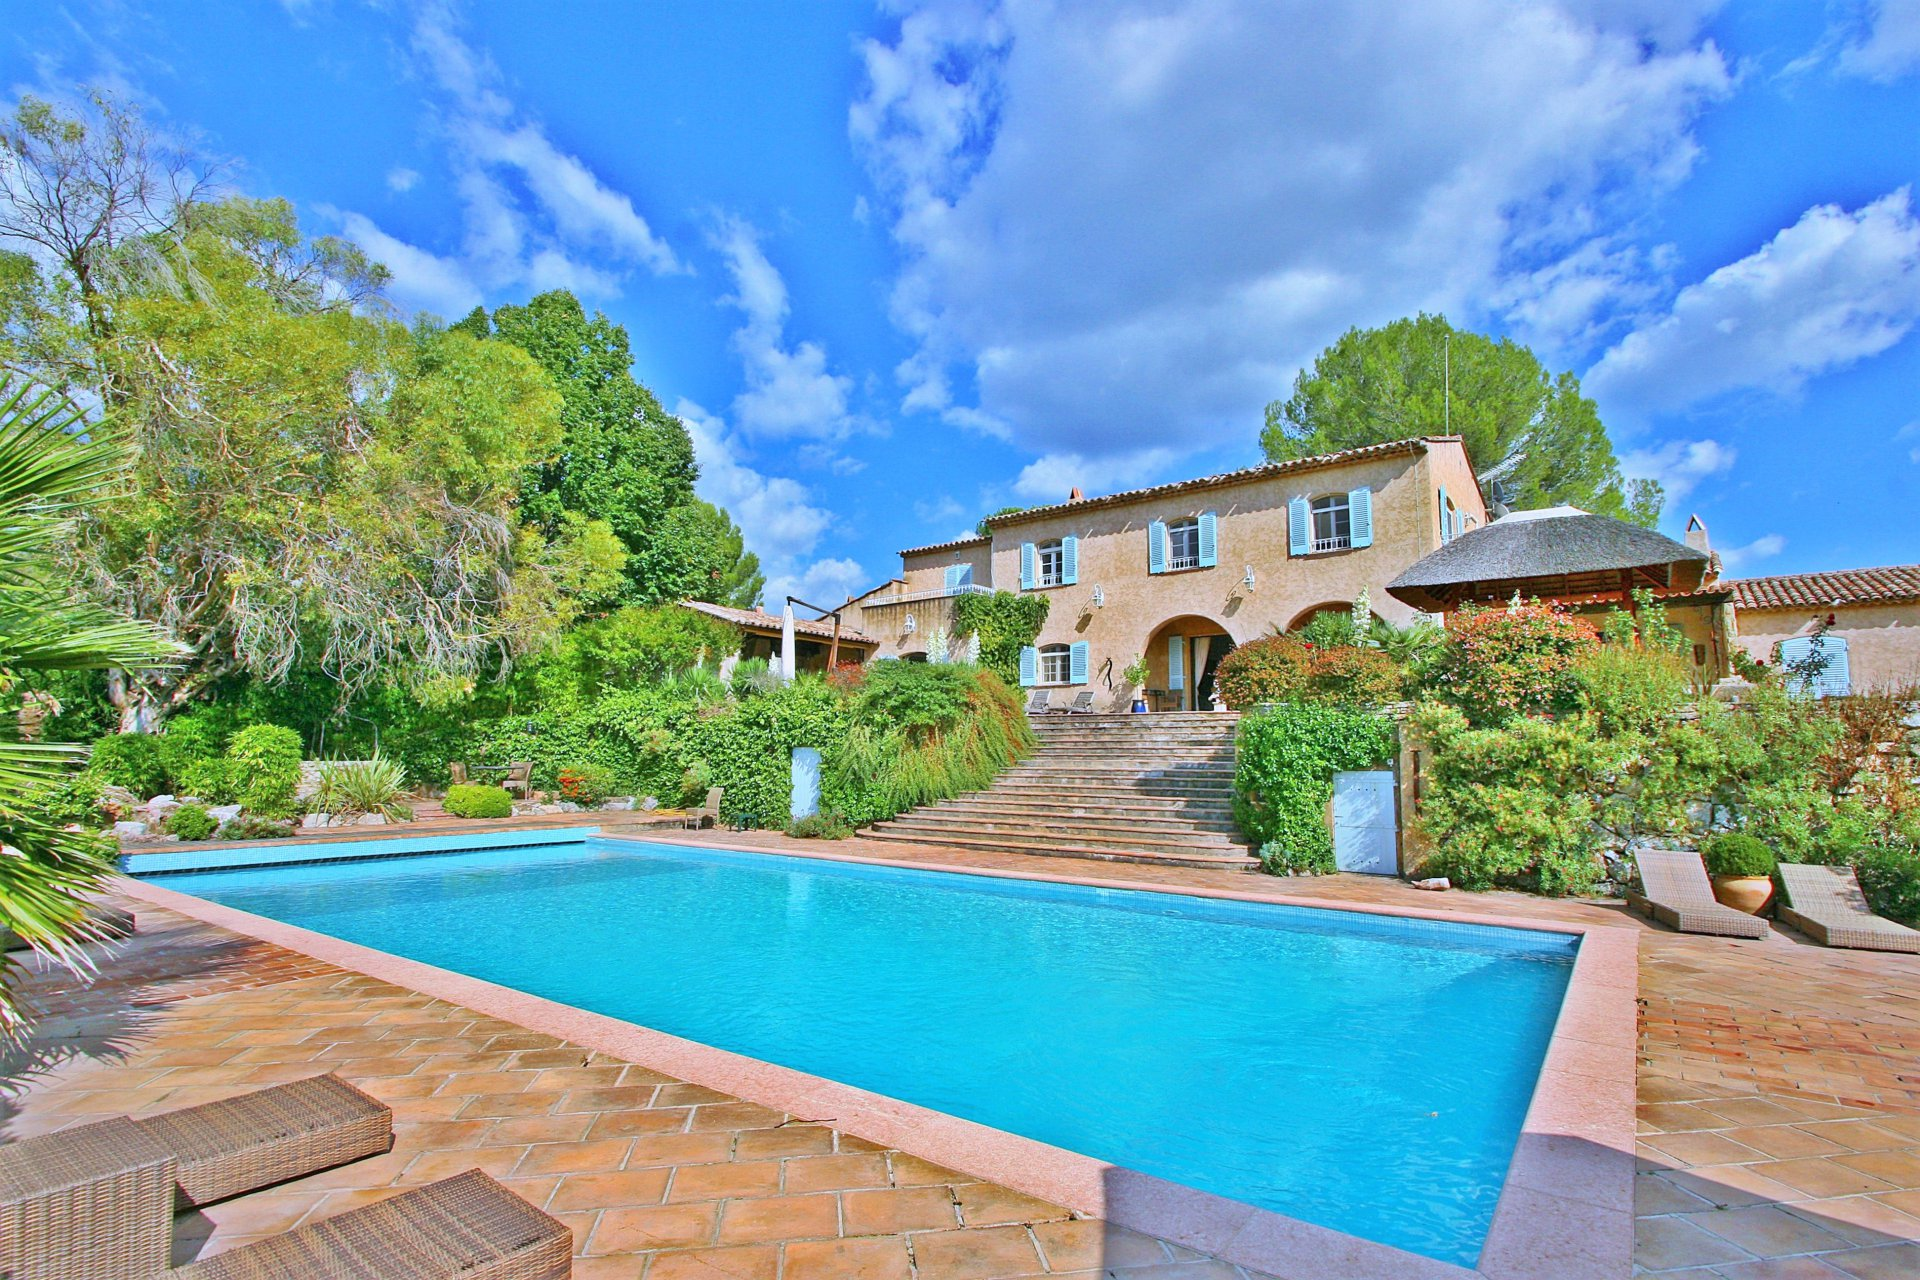 Stunning property set on 4ha of land walking distance from an authentic Provencal village